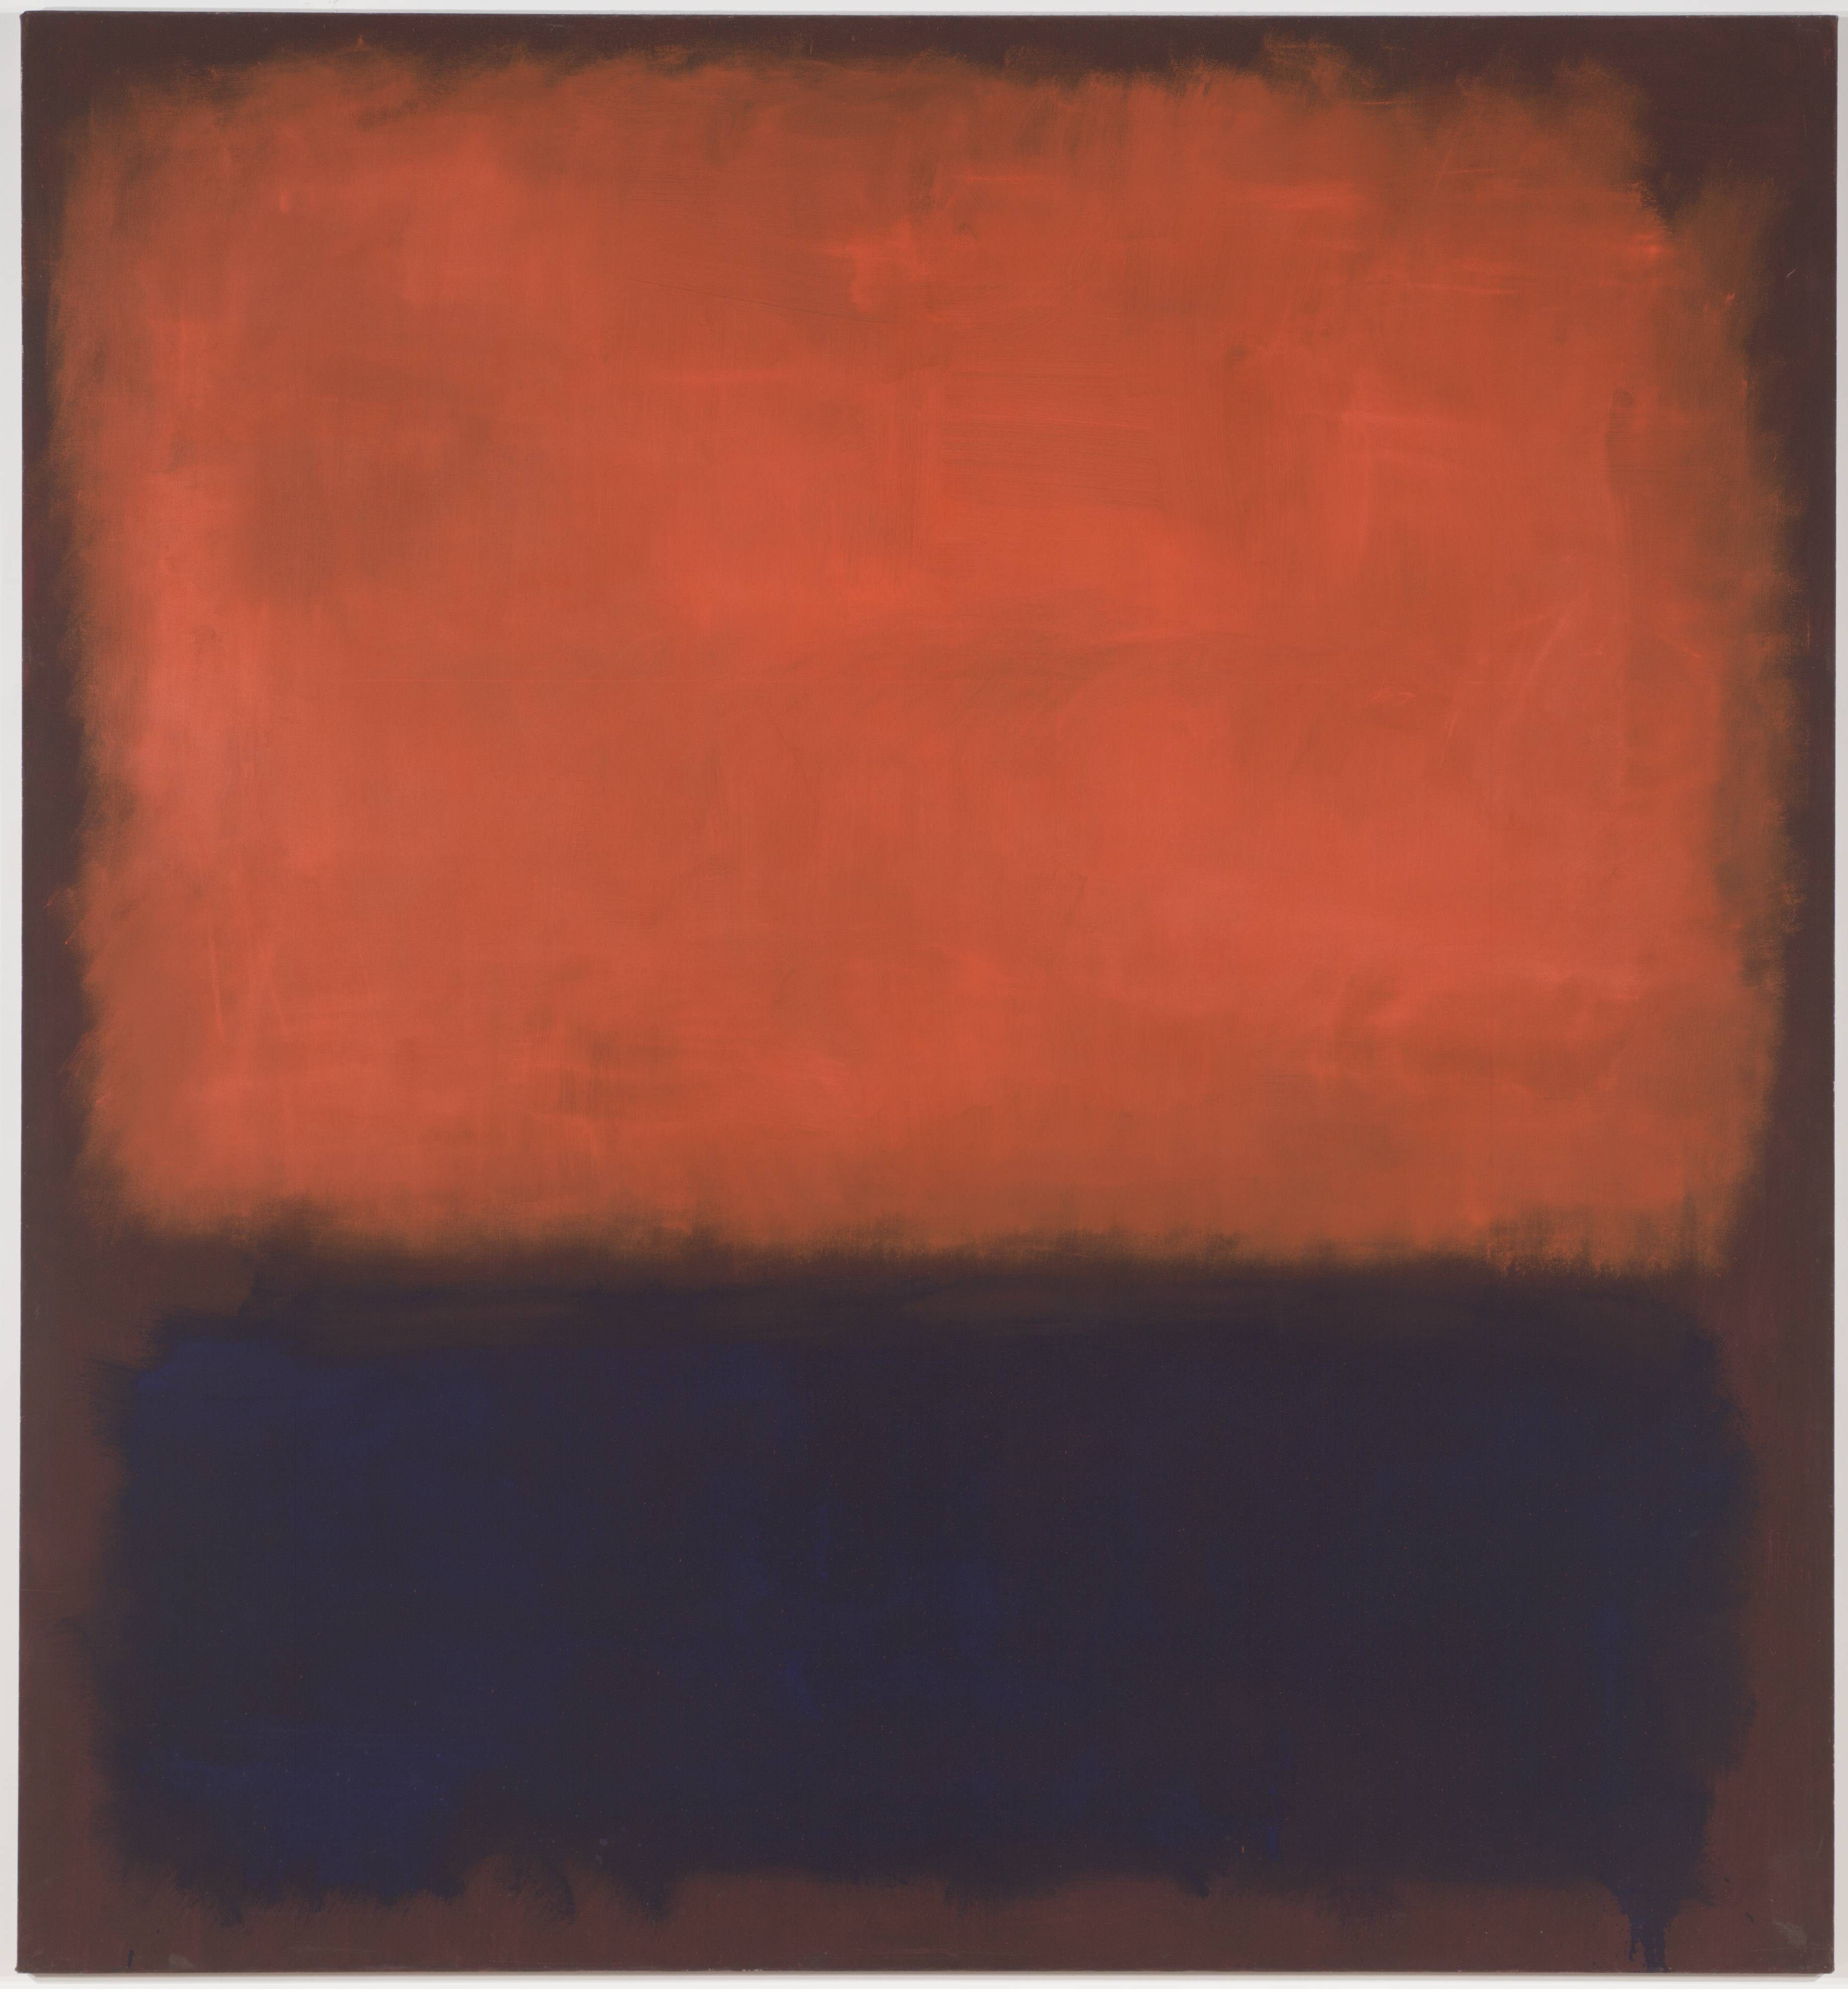 <p>This oil painting features two roughly rectangular patches of color on a canvas that is nine-and-a-half feet tall, and almost nine feet wide. On the bottom third of the canvas is a patch of dark indigo blue, painted with quick, rough brushstrokes. Near our lower right-hand corner, the paint is so thick that it drips down and off of the canvas. A larger rectangle fills the top two thirds of the painting. This patch is a mottled, velvety, red-orange color that appears, in places, to glow from within. The two patches are separated and framed by a background the color of auburn hair. While the loose, sketch-like brushstrokes are evident in both patches, especially along the edges, the indigo rectangle on the bottom is far more dense. In contrast, the luminous red-orange patch is filled with bright streaks that resemble light trails, or neon afterglow.</p>